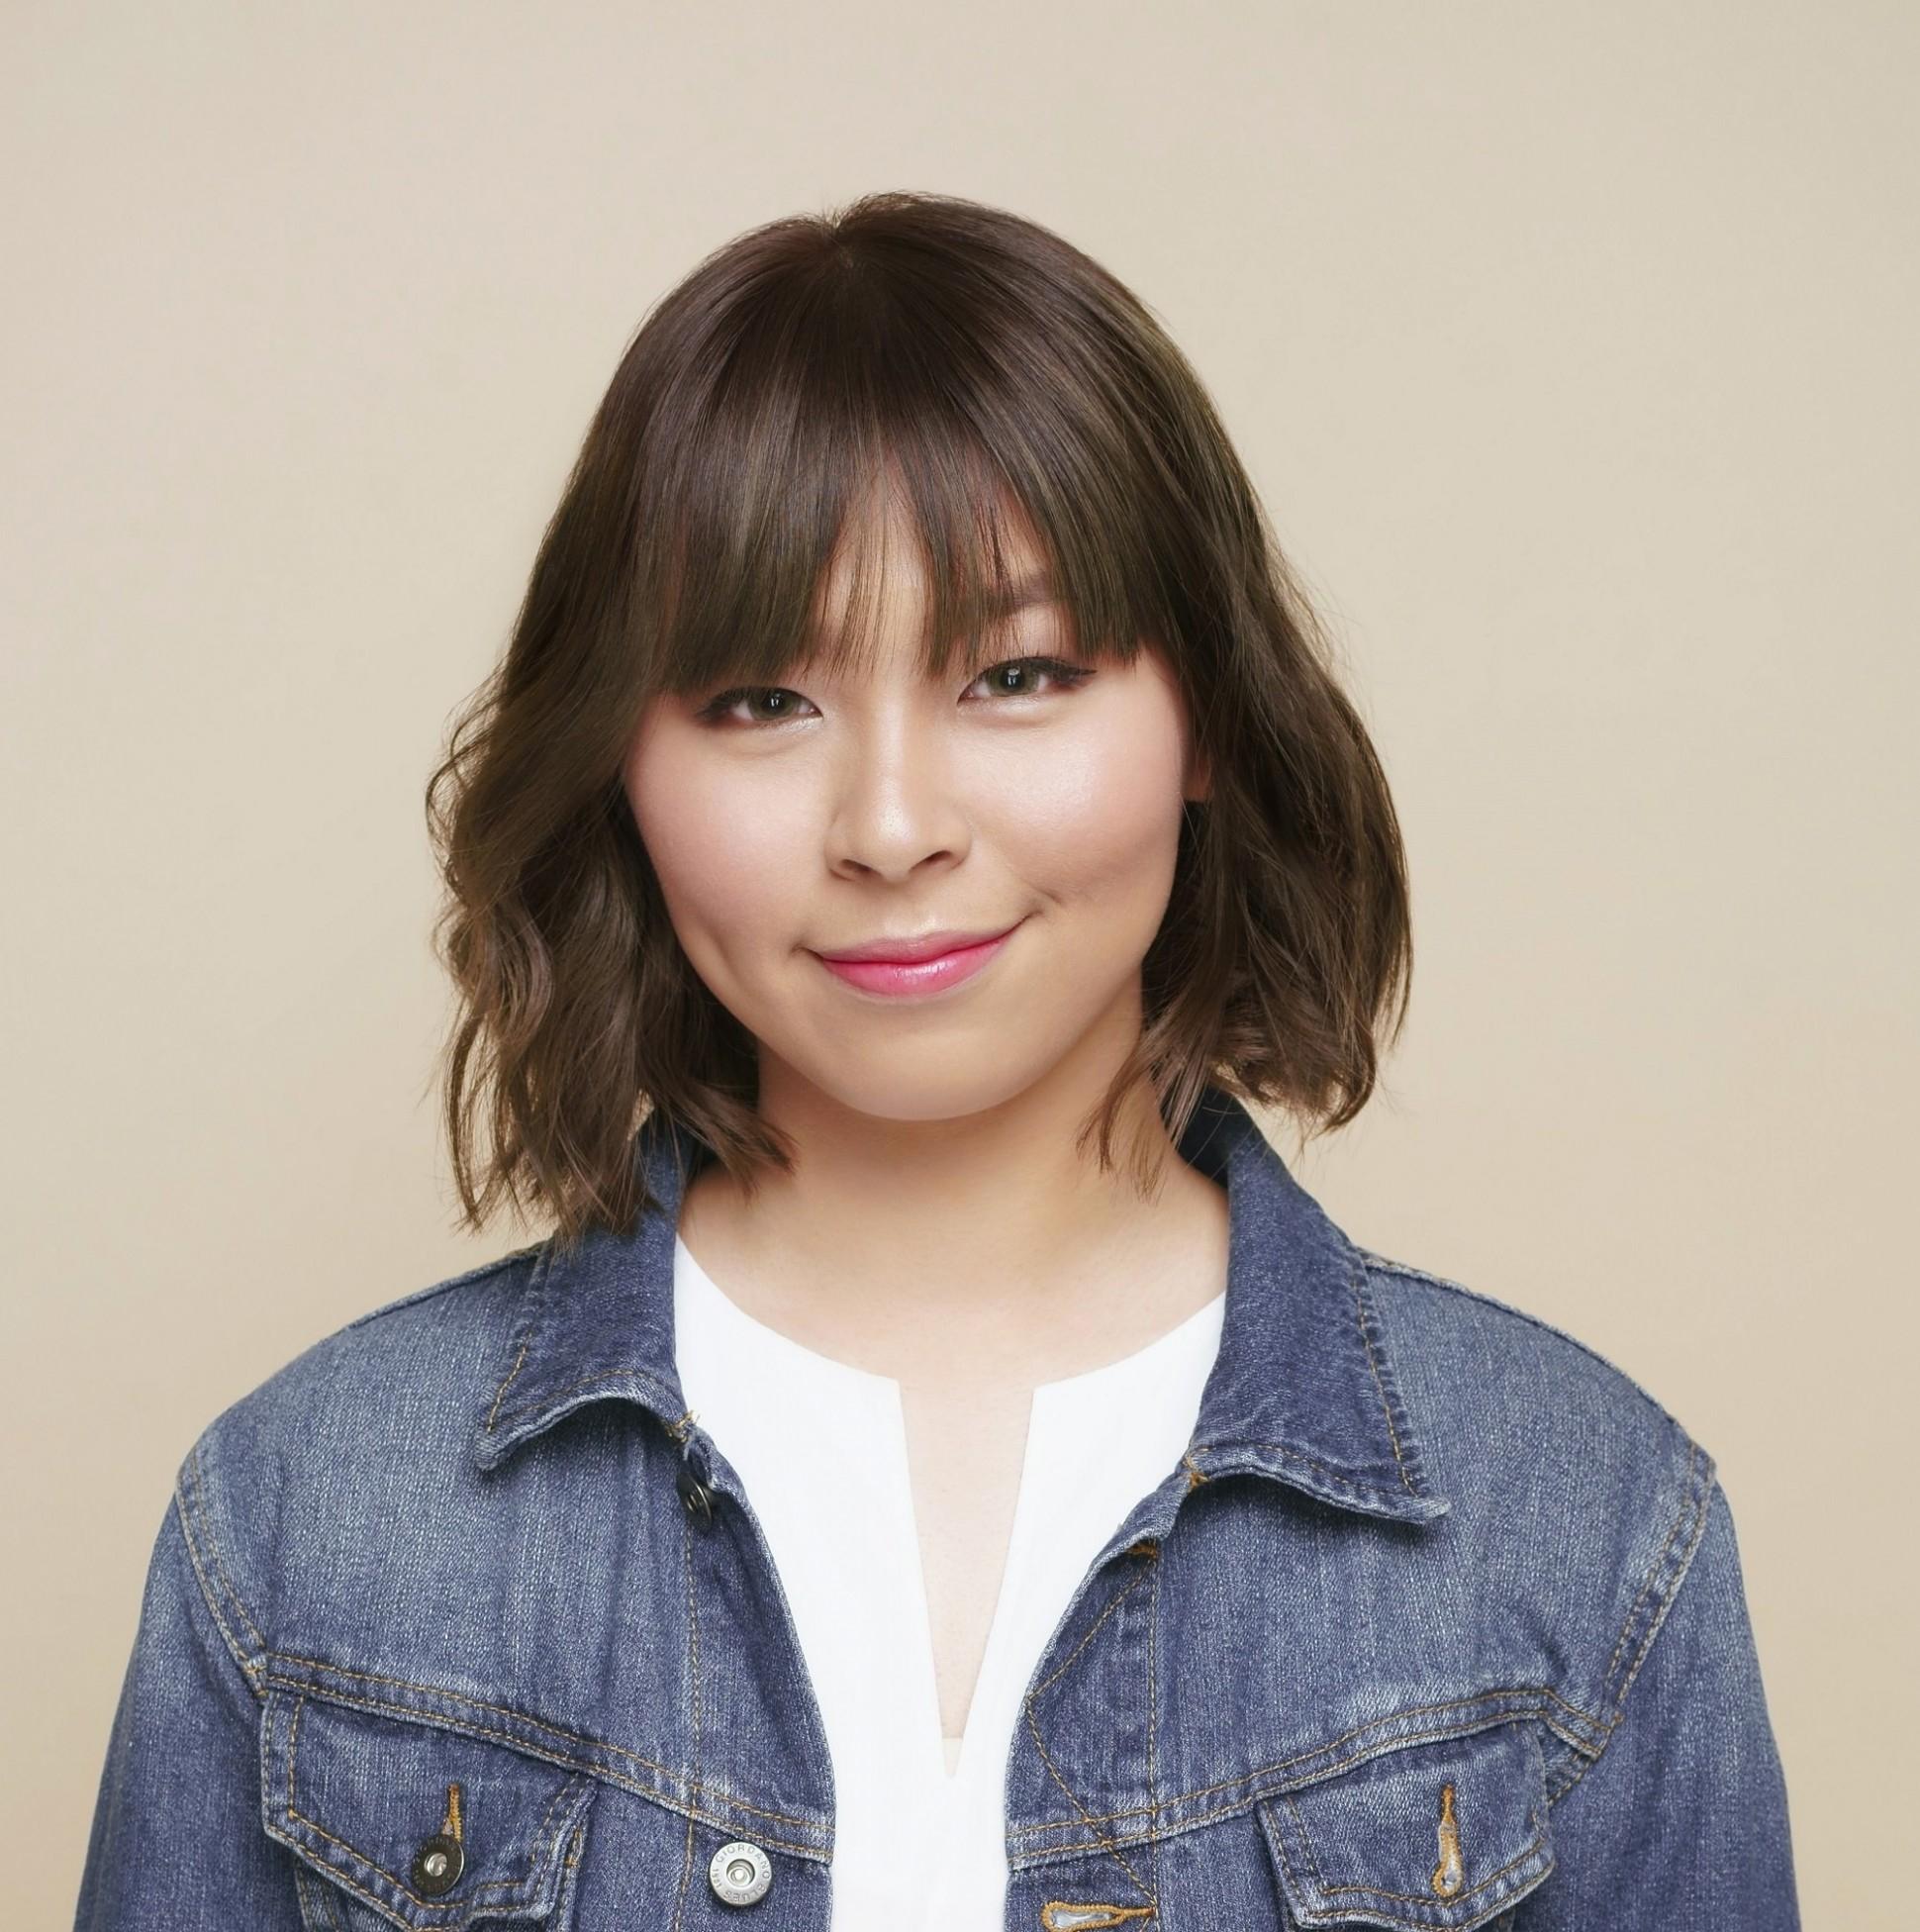 Short Hair For Round Face: 10 Stylish Ideas For 10! Short Hair For Round Chubby Face